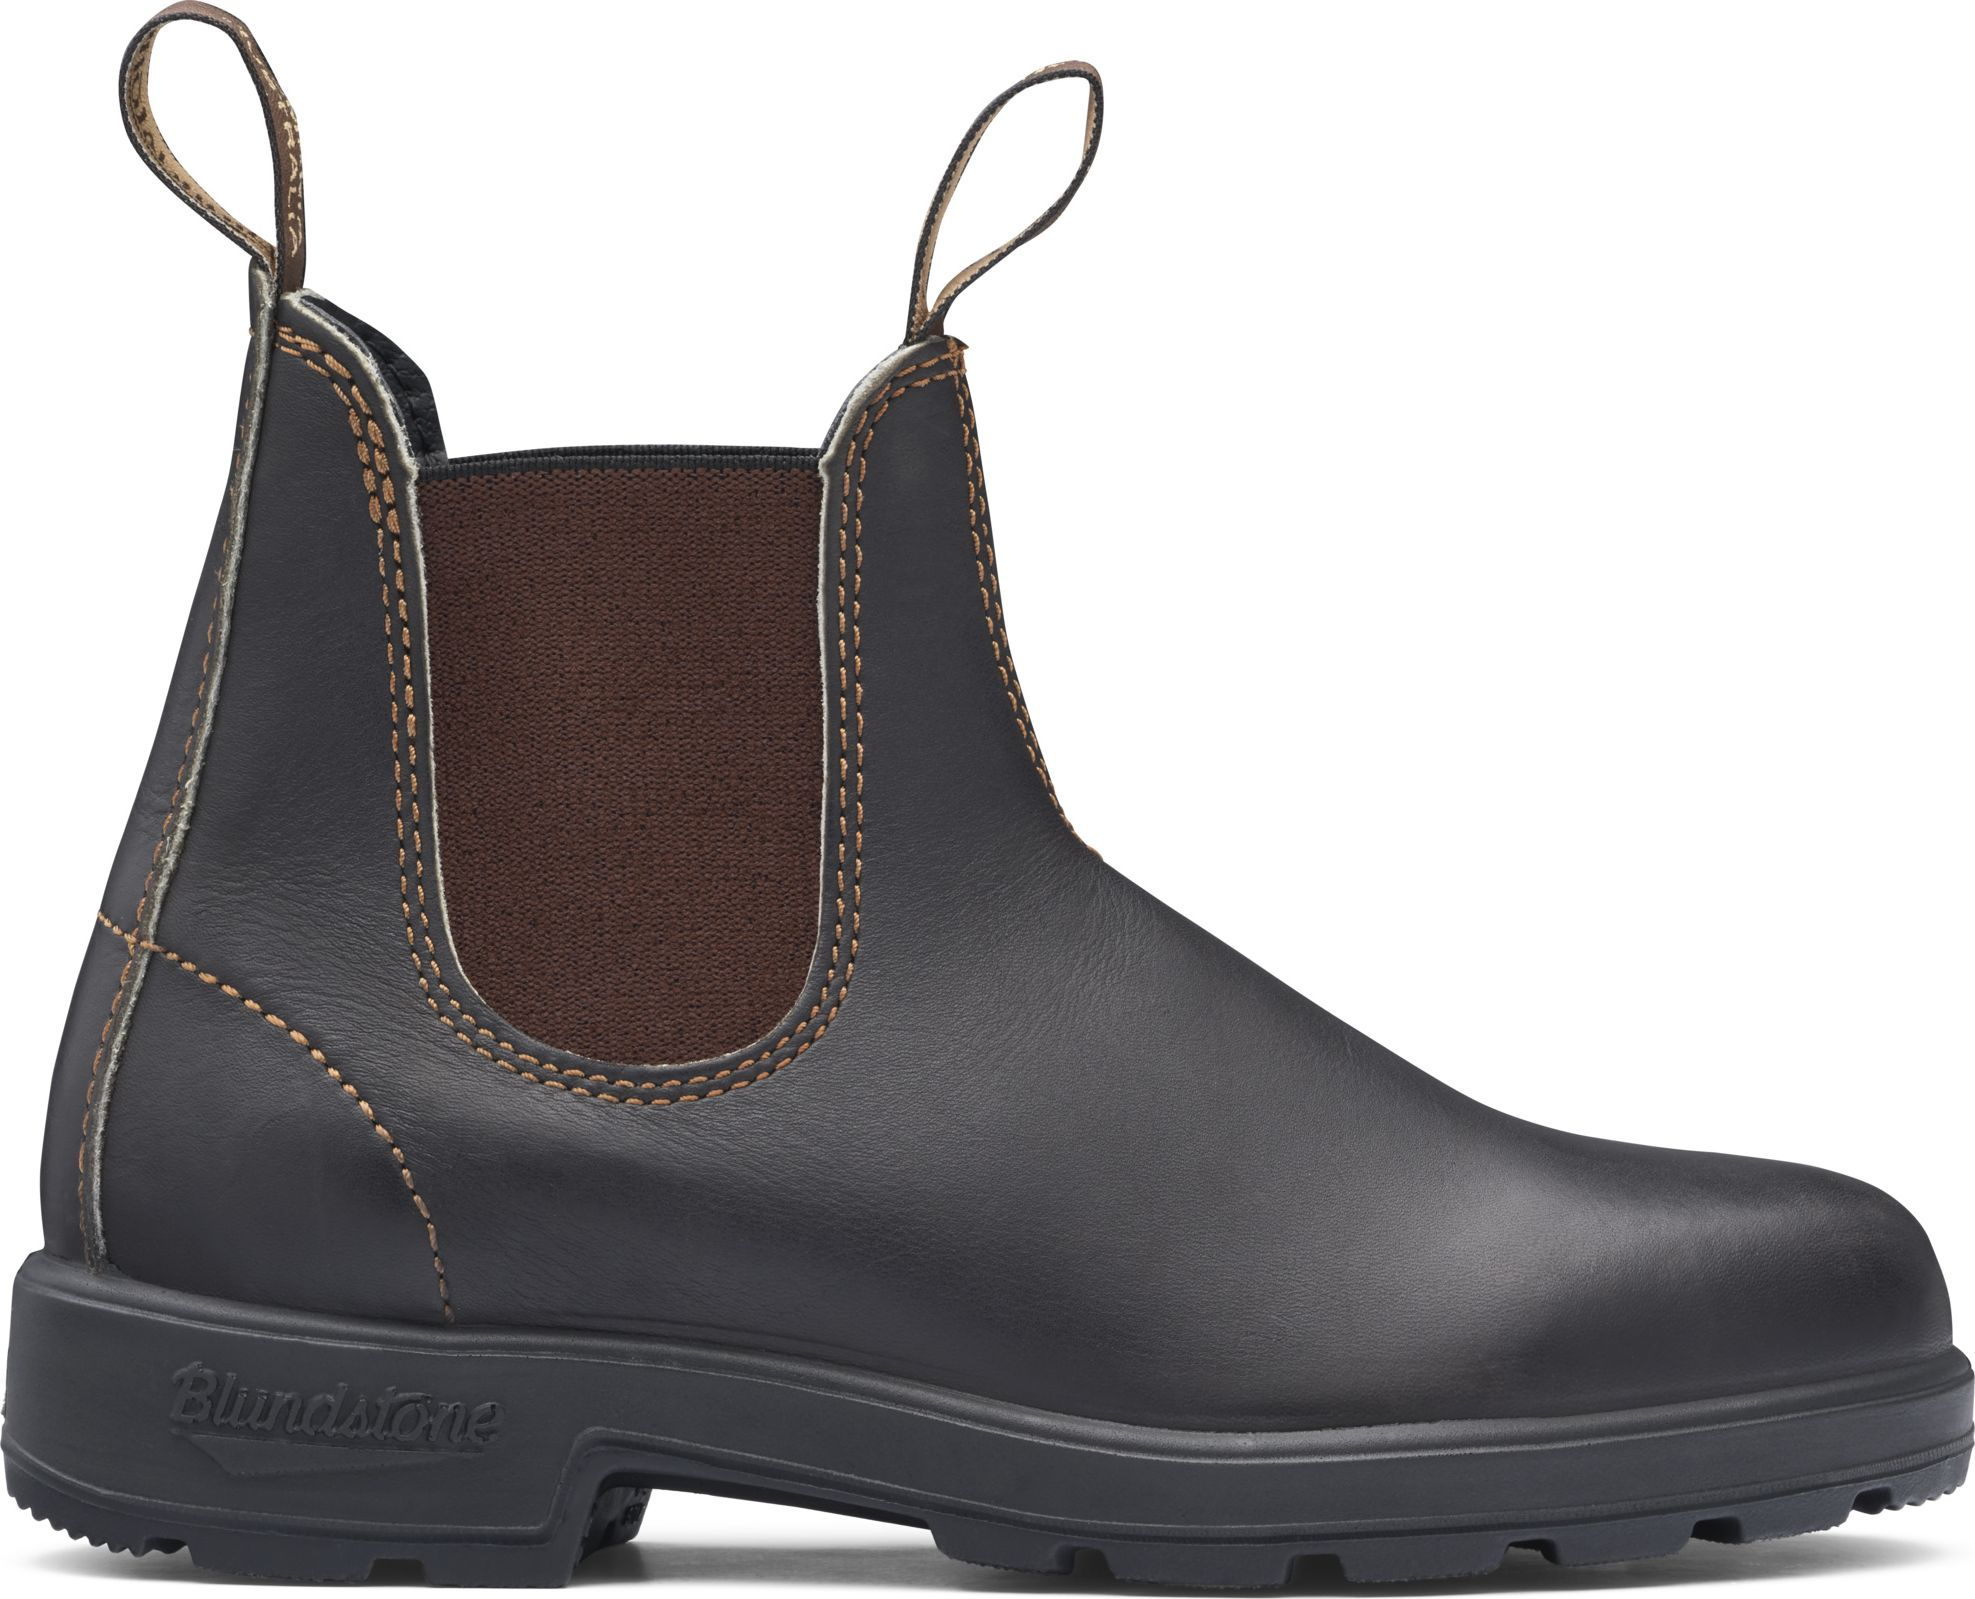 Blundstone 500 Brown 45